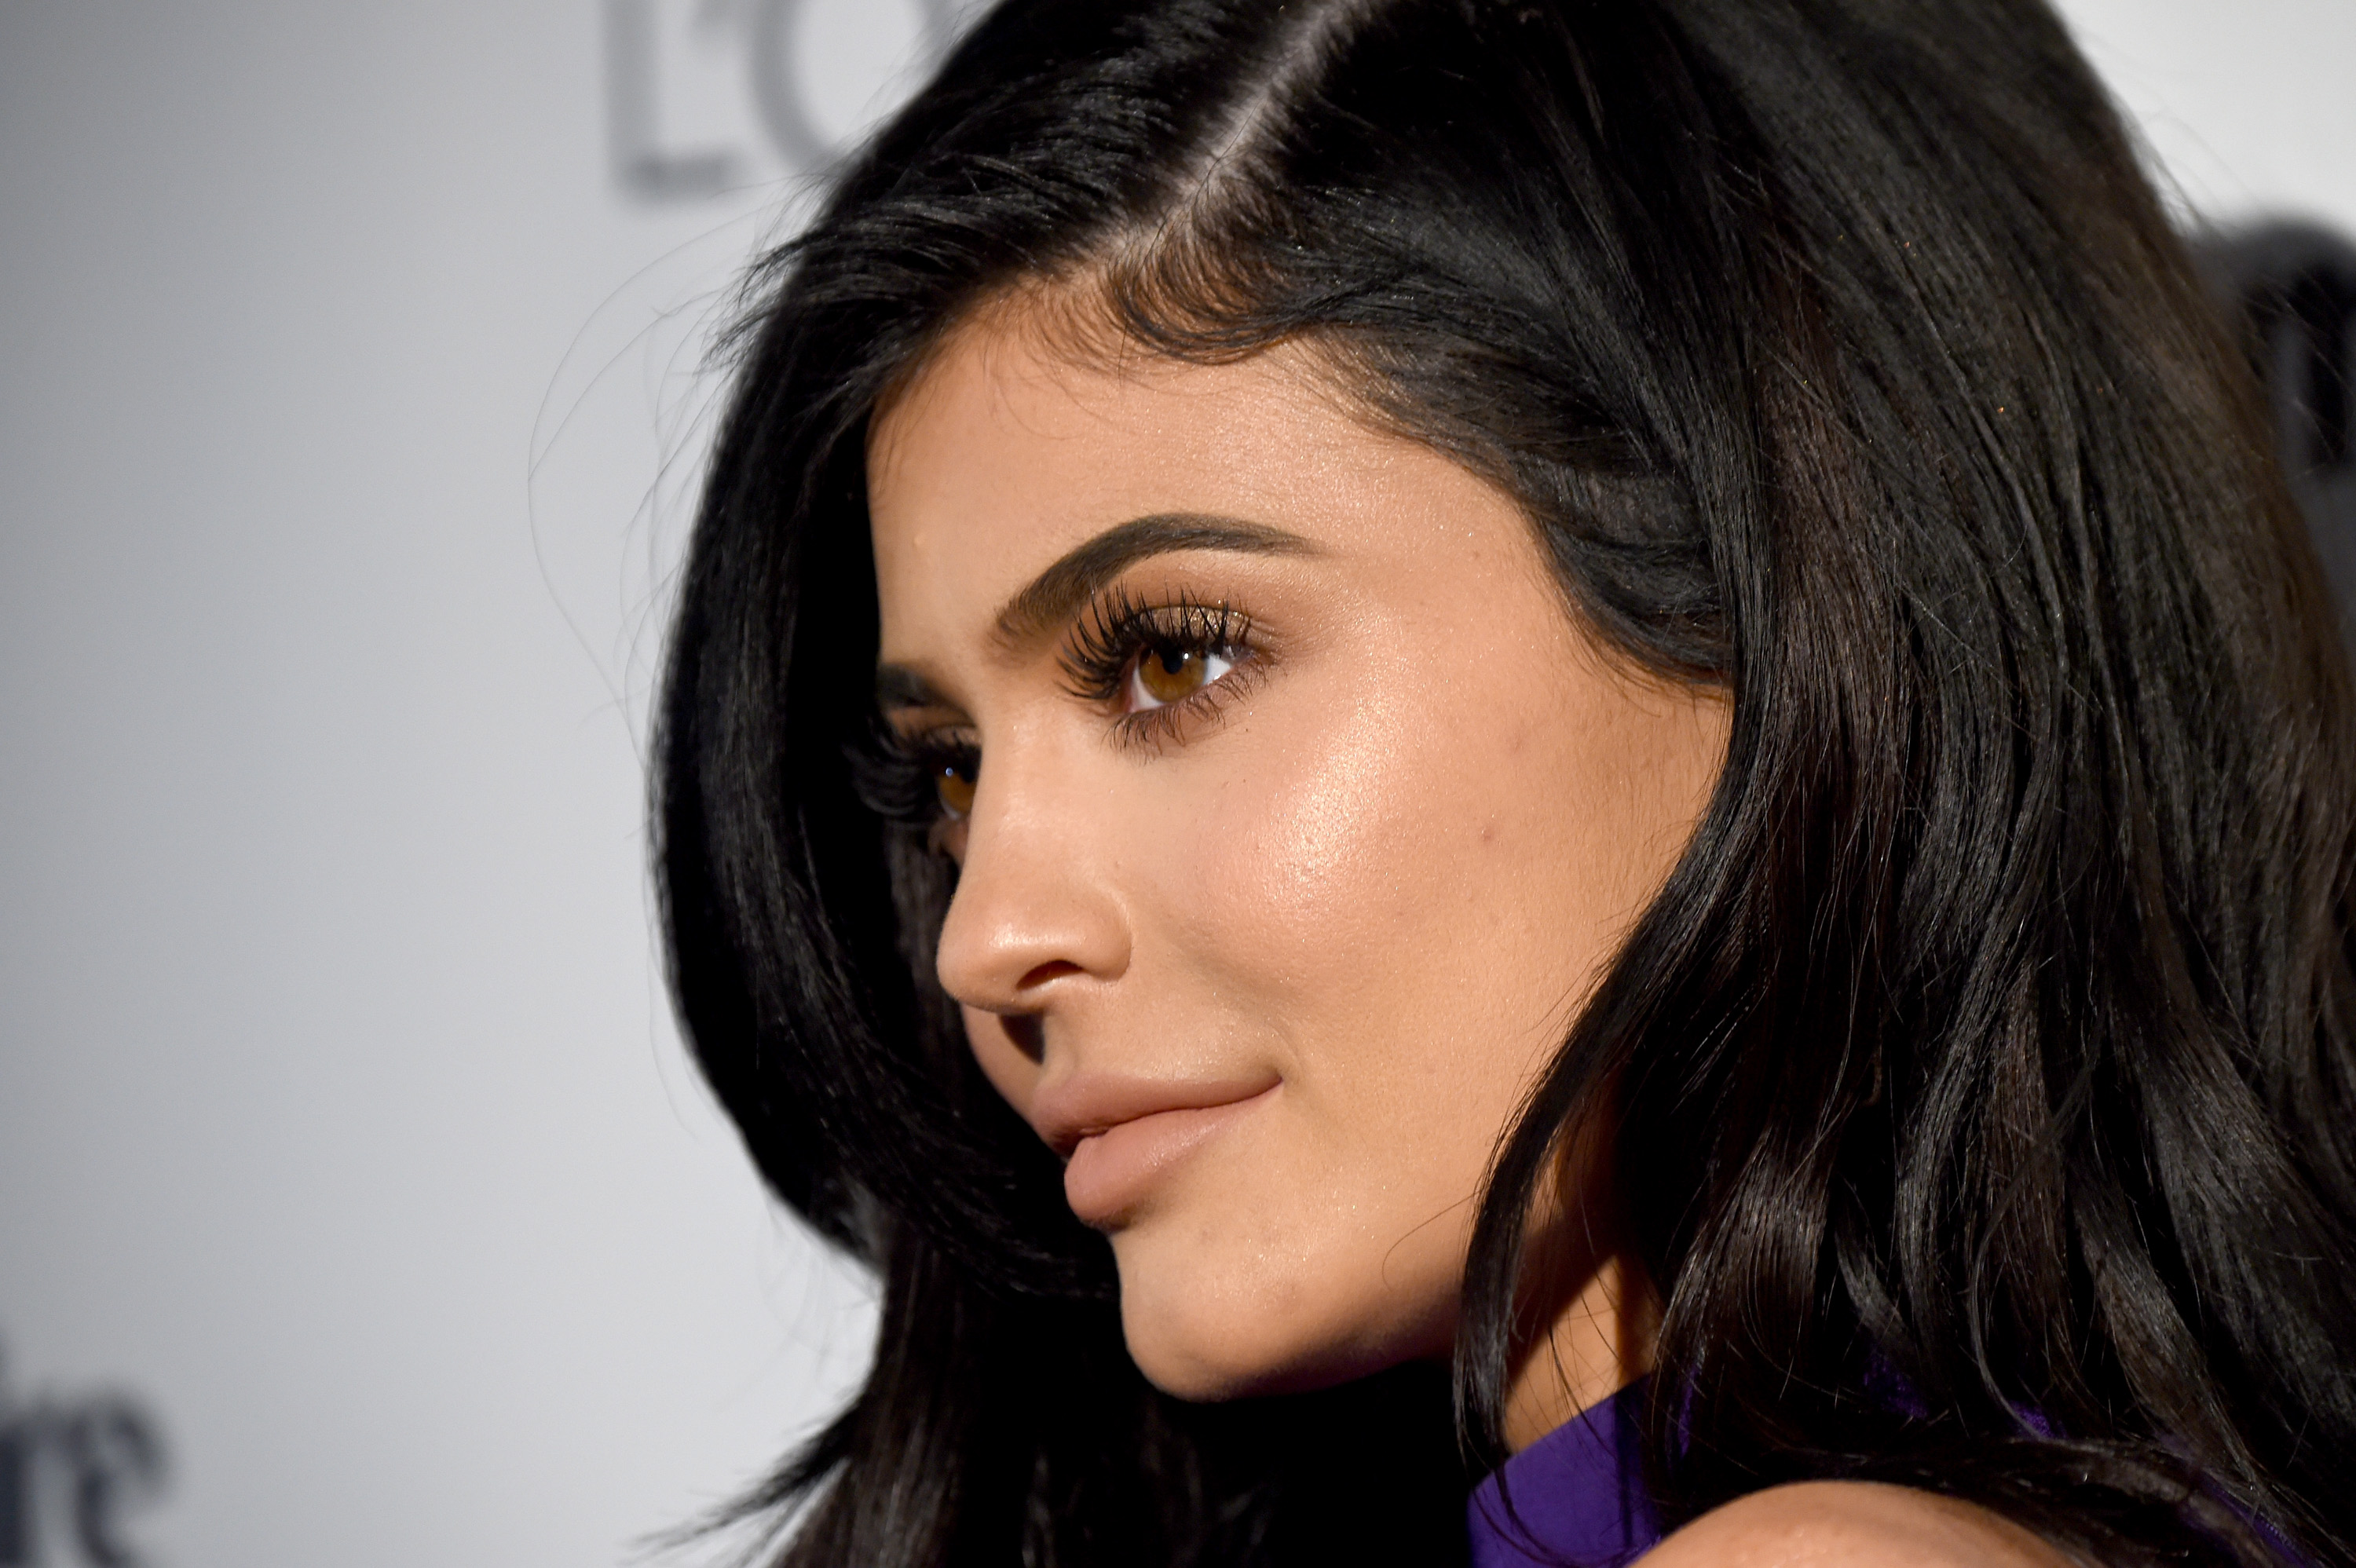 Kylie Jenner at awards show